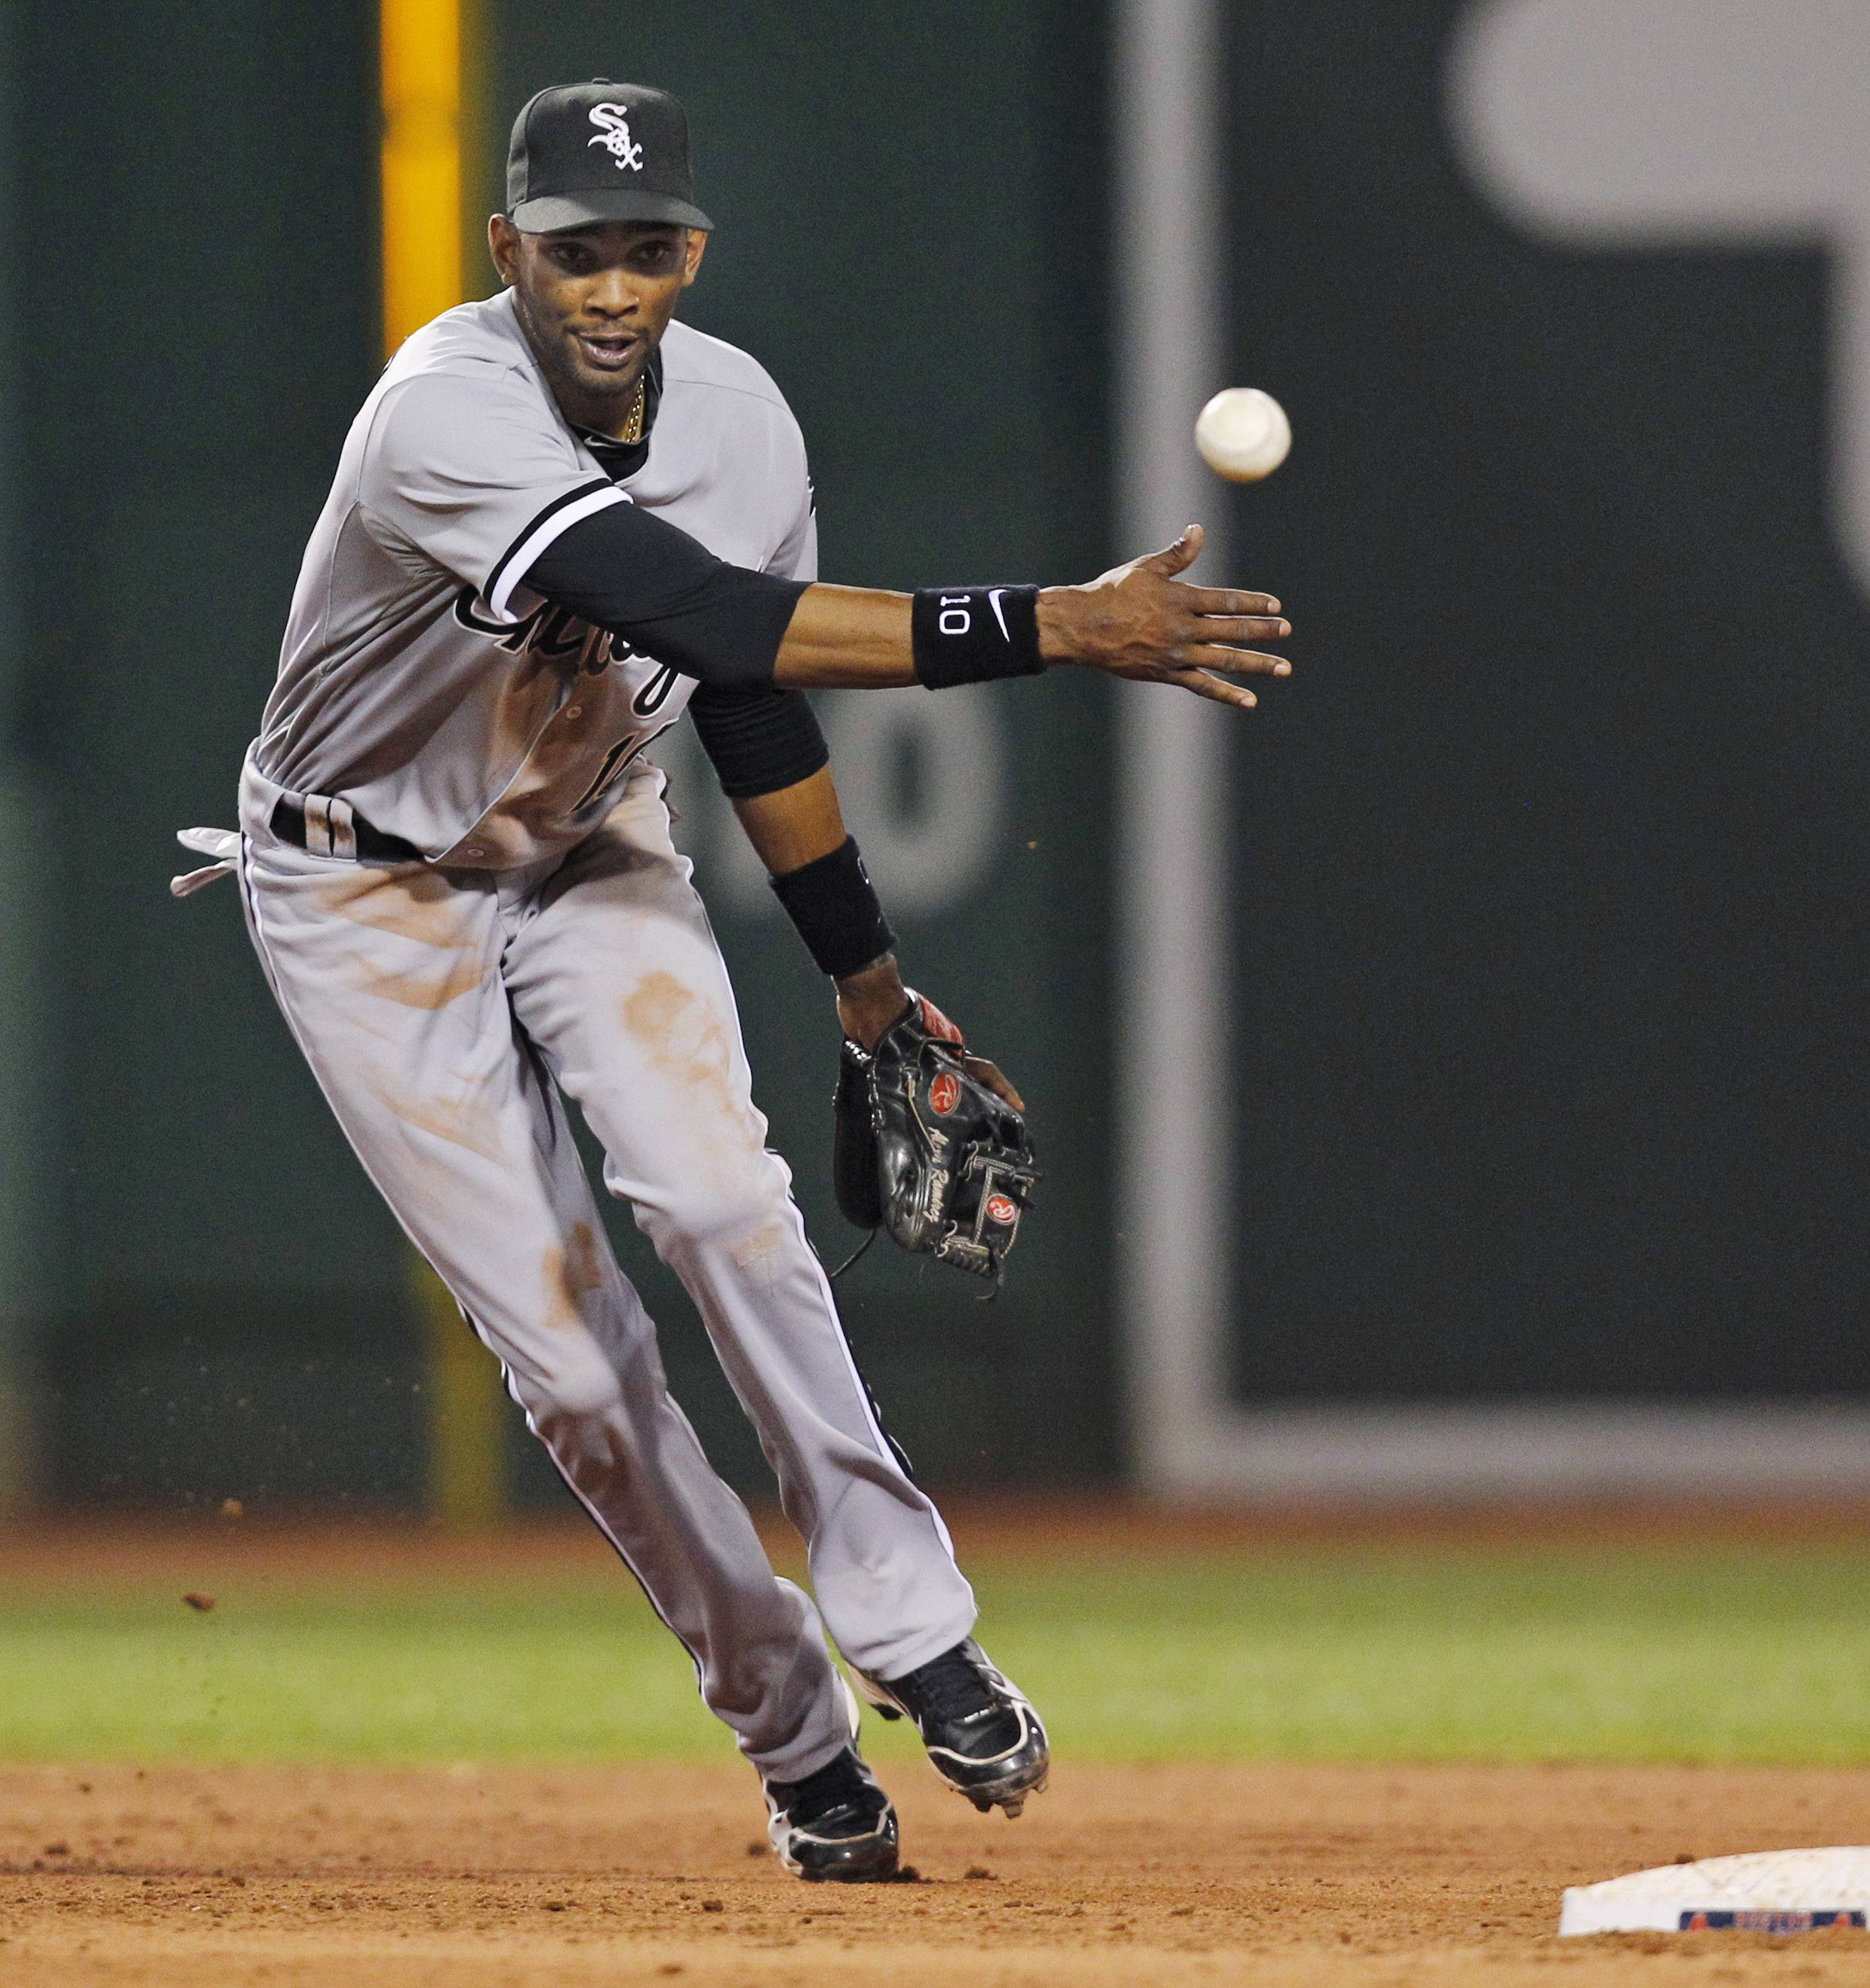 Alexei Ramirez tosses the ball to second base during the sixth inning at Fenway Park.